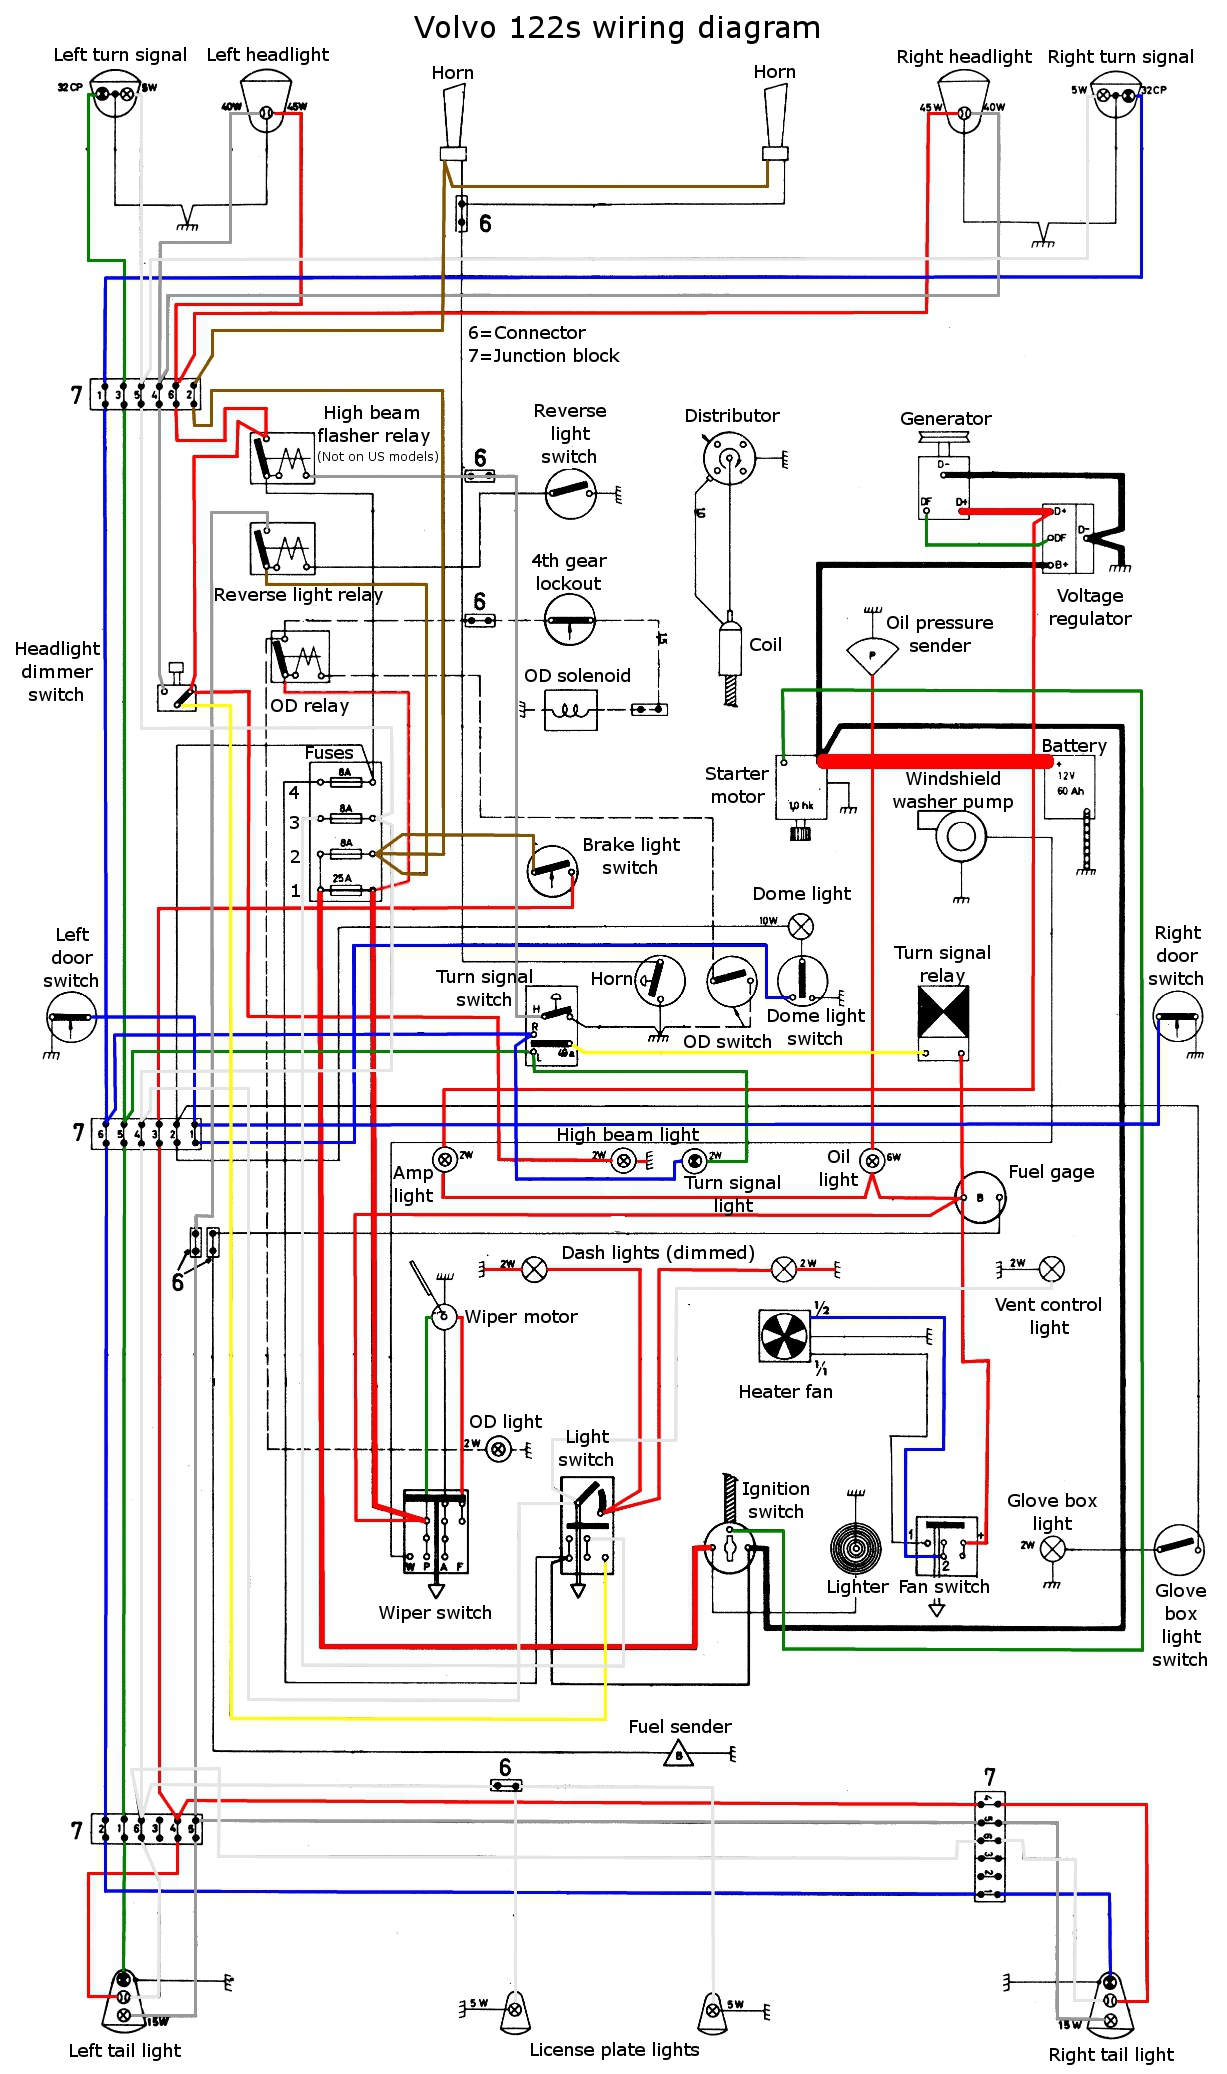 True Freezer Model T 49f Wiring Diagram Completed Diagrams Tac 48 A For 35f Auto Electrical